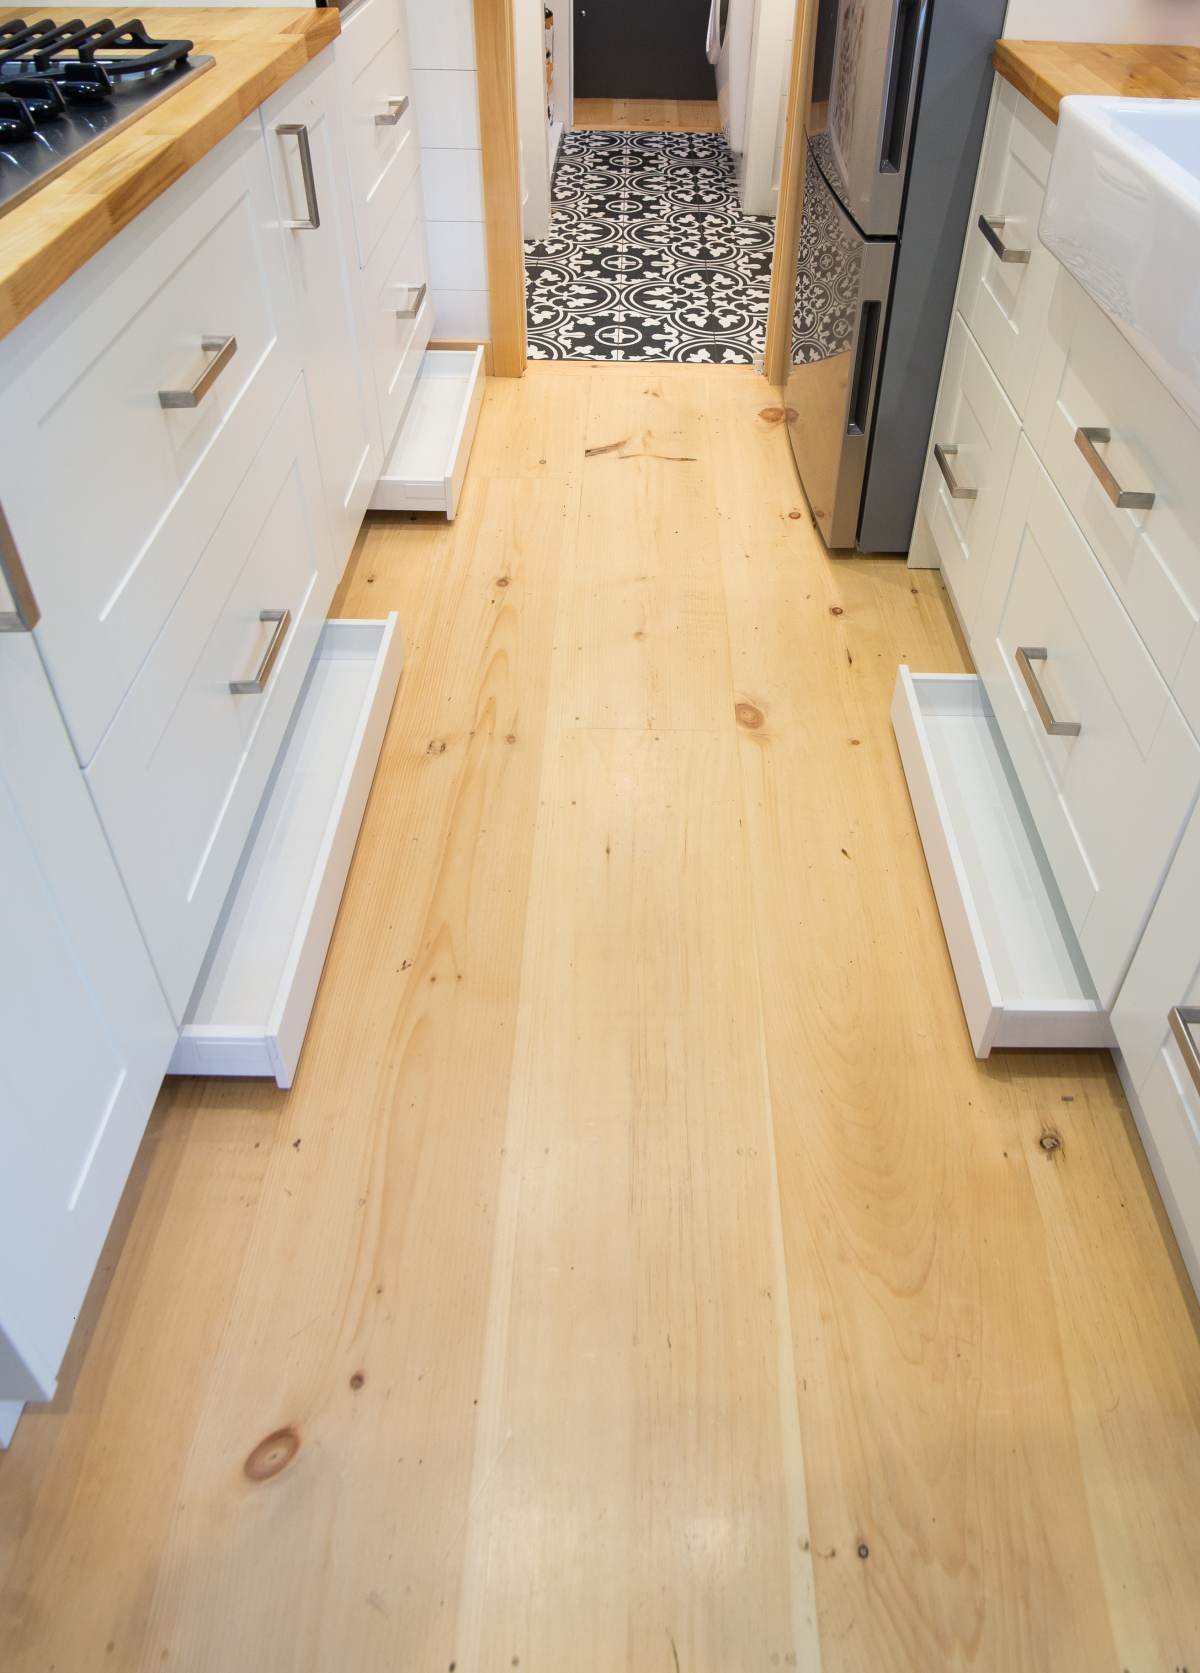 Clever pull-out trays add additional storage to the very bottom section of the kitchen cabinets